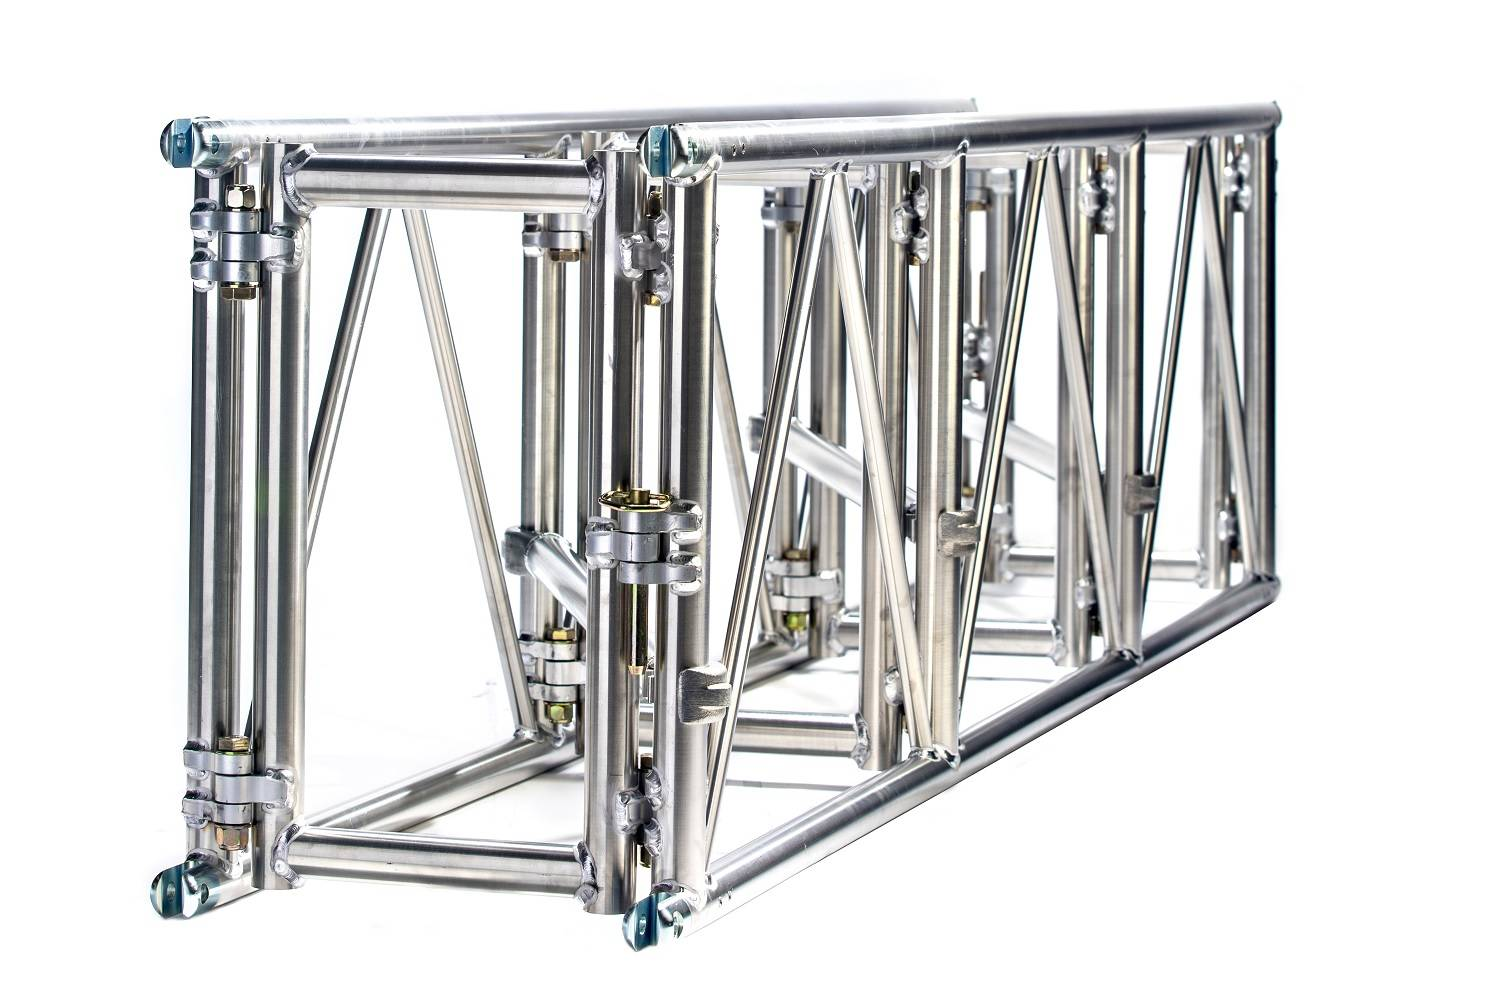 Heavy duty folding truss 30.5 x 20.5 spigoted